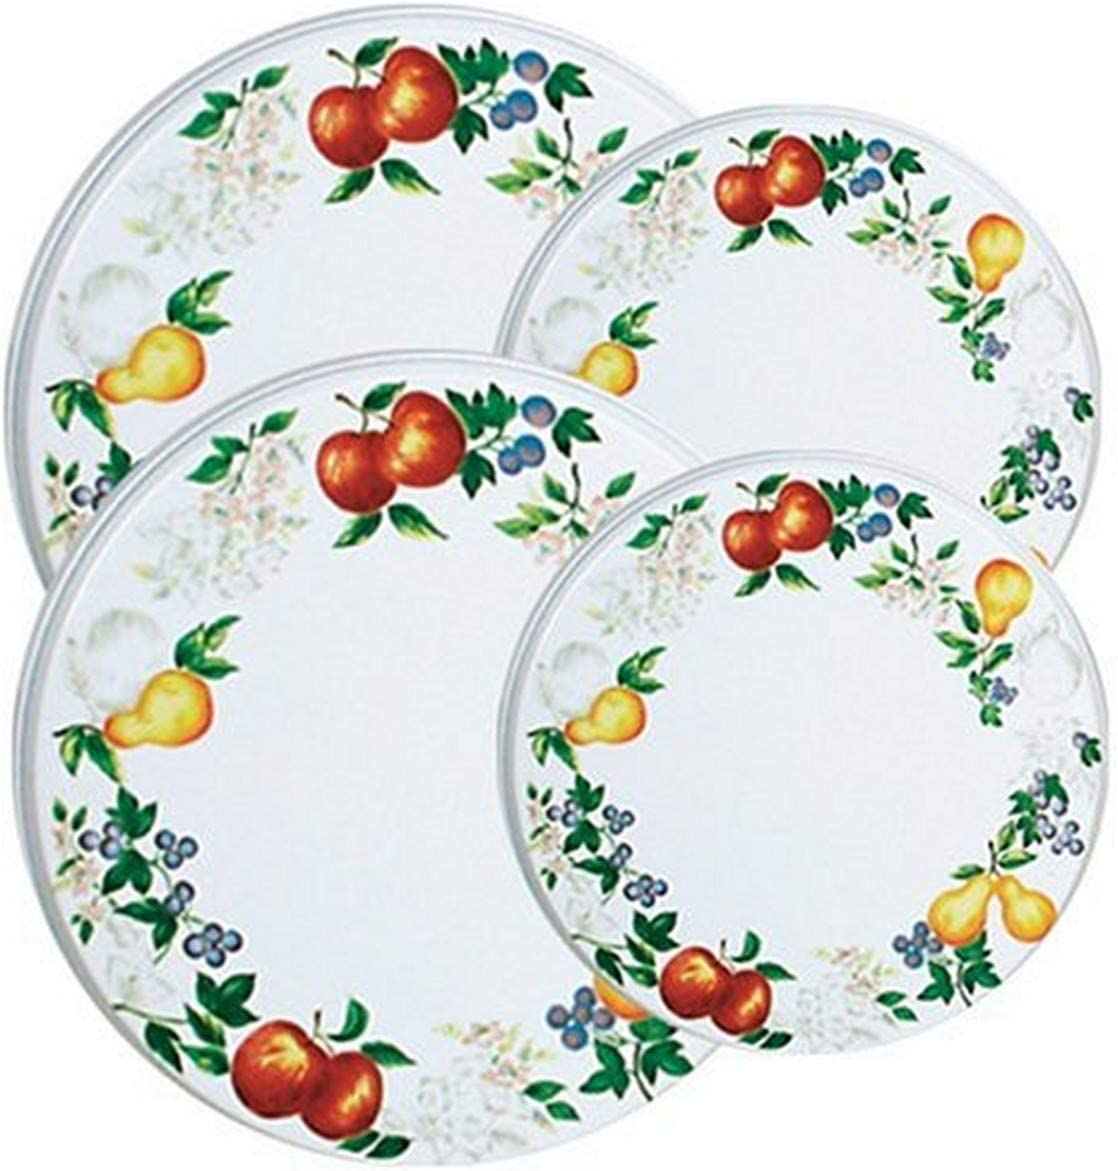 Corelle Coordinates by Reston Lloyd Electric Stovetop Burner Covers, Set of 4, Chutney